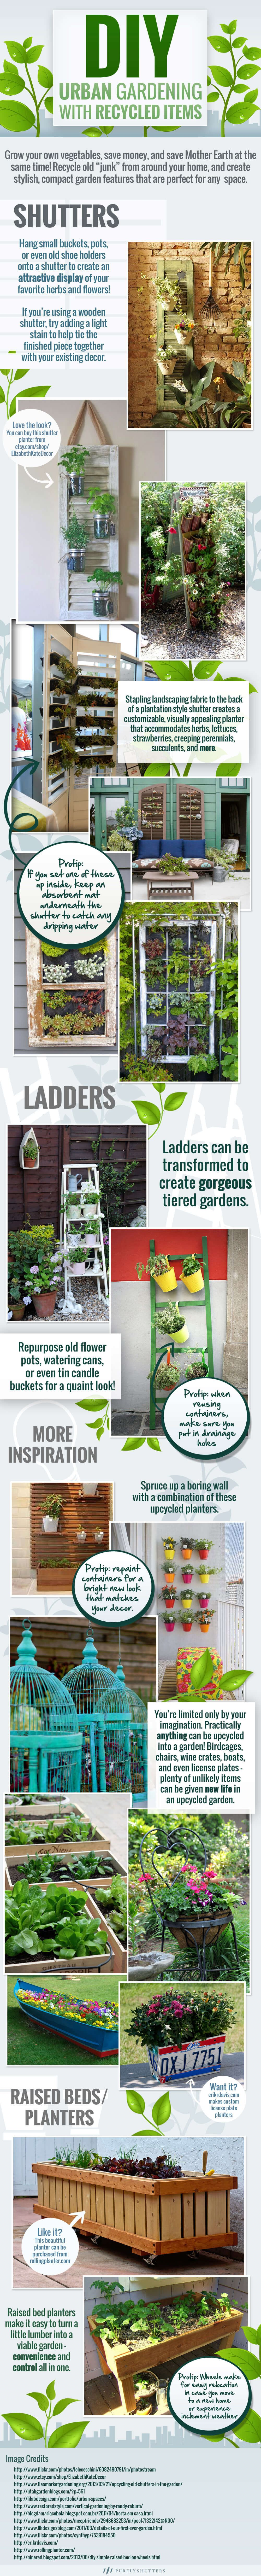 DIY Urban Gardening with Recycled Items